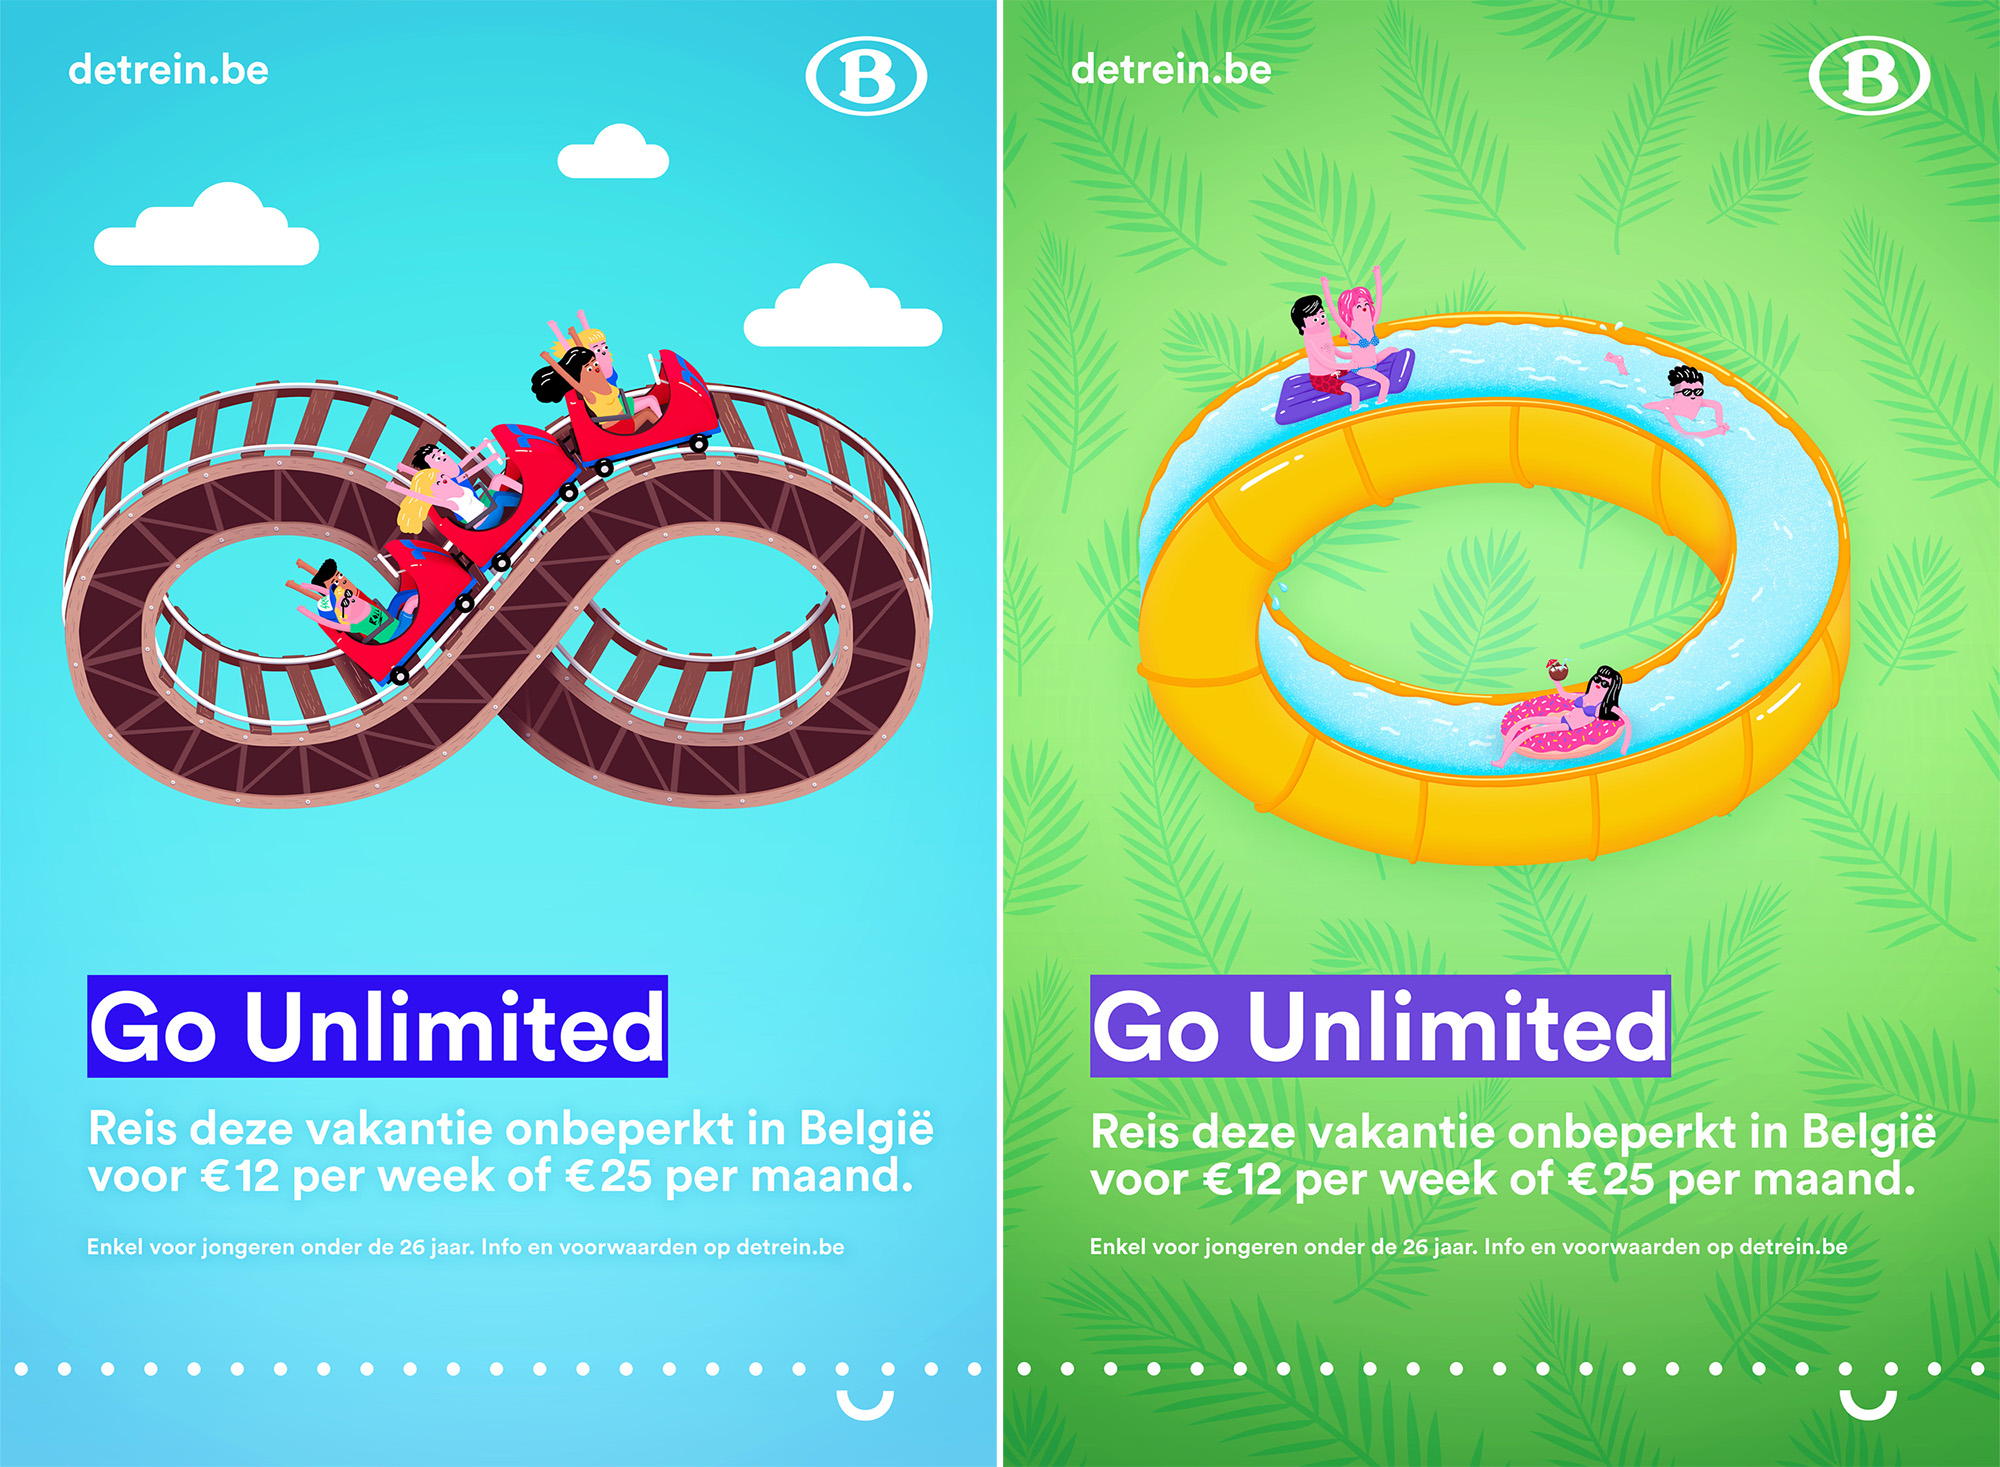 This is the summer edition of 'Go Unlimited'.